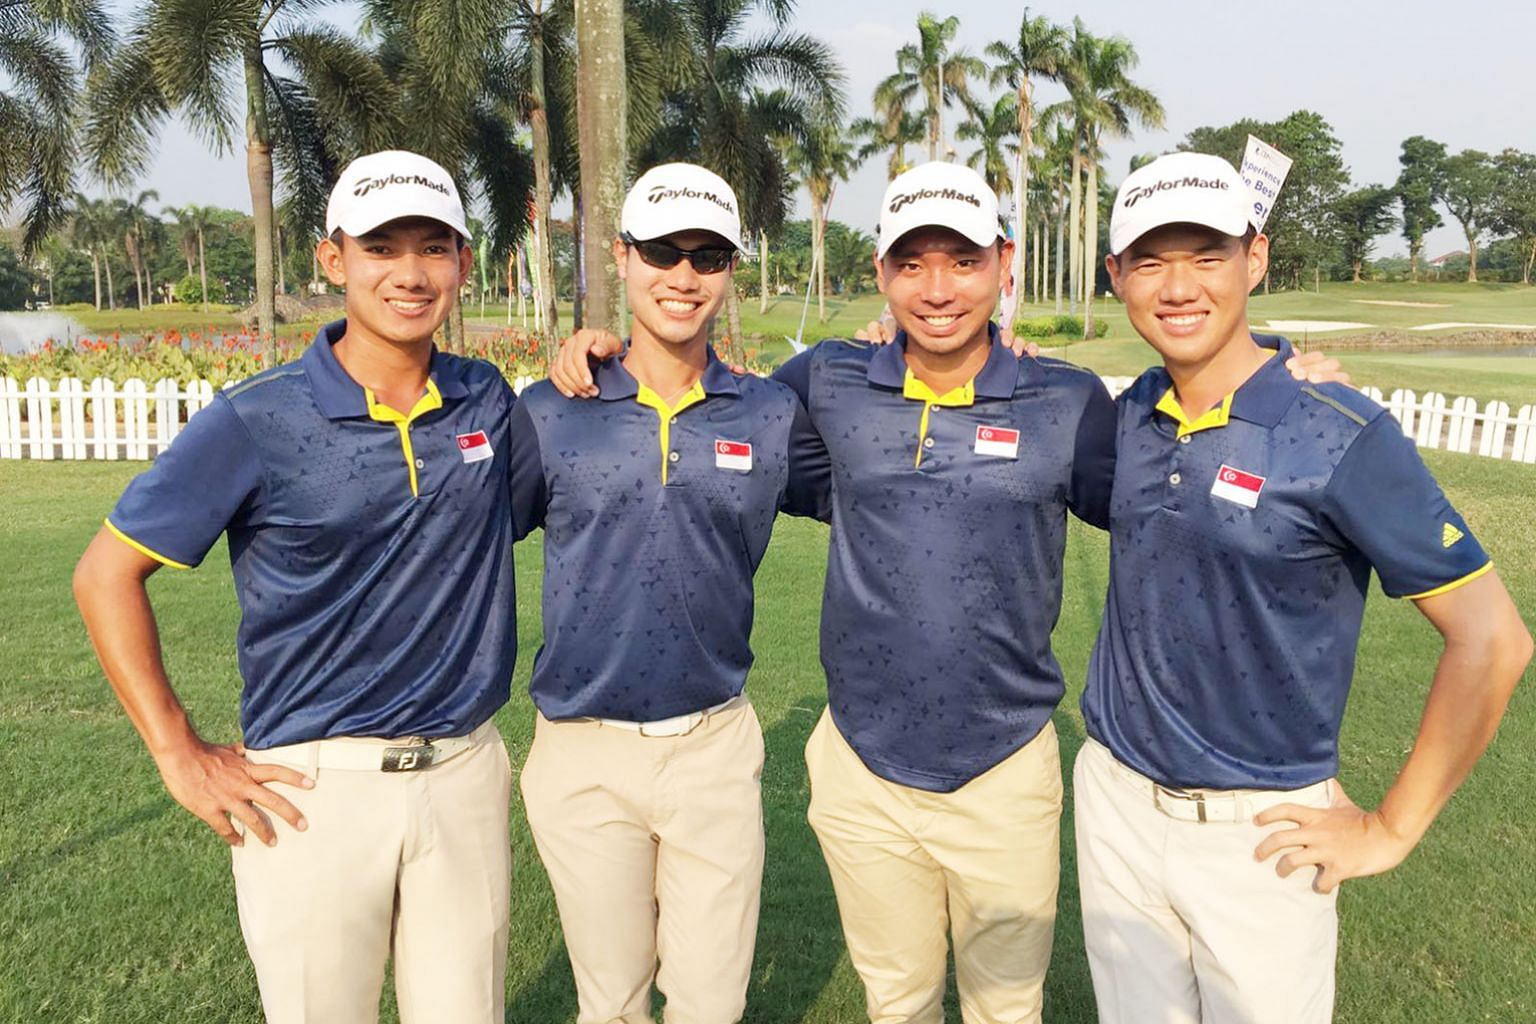 Singapore golfers (from left) Marc Ong, Gregory Foo, Joshua Shou and Joshua Ho are going great guns in the Putra Cup, leading Thailand in the team event by three shots entering the final day.